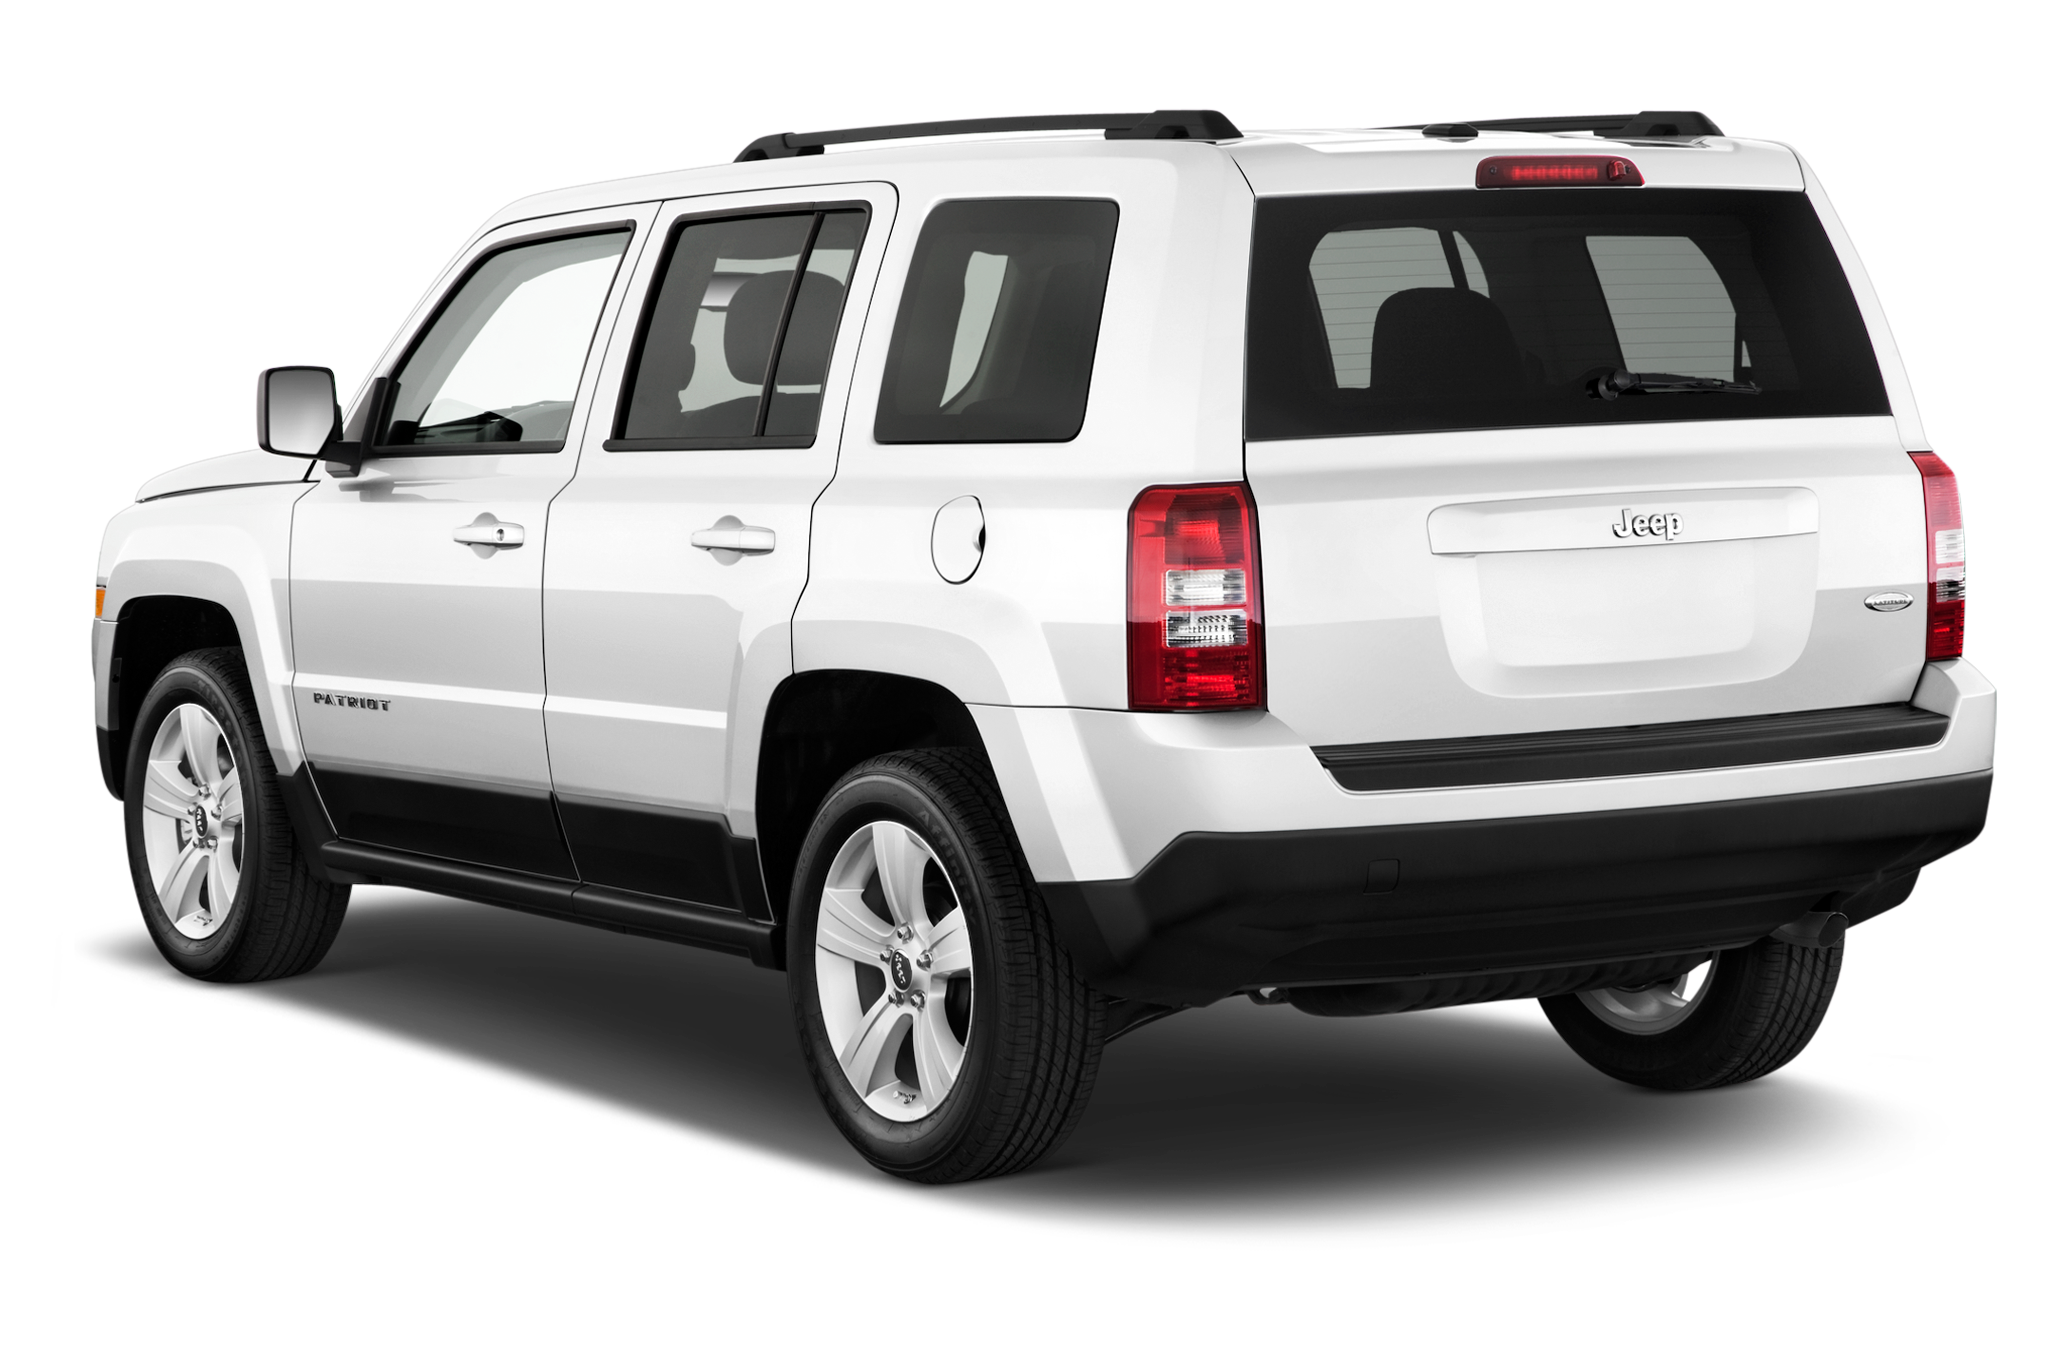 Back of a car clipart svg library stock Jeep Patriot back view PNG Clipart - Download free images in PNG svg library stock